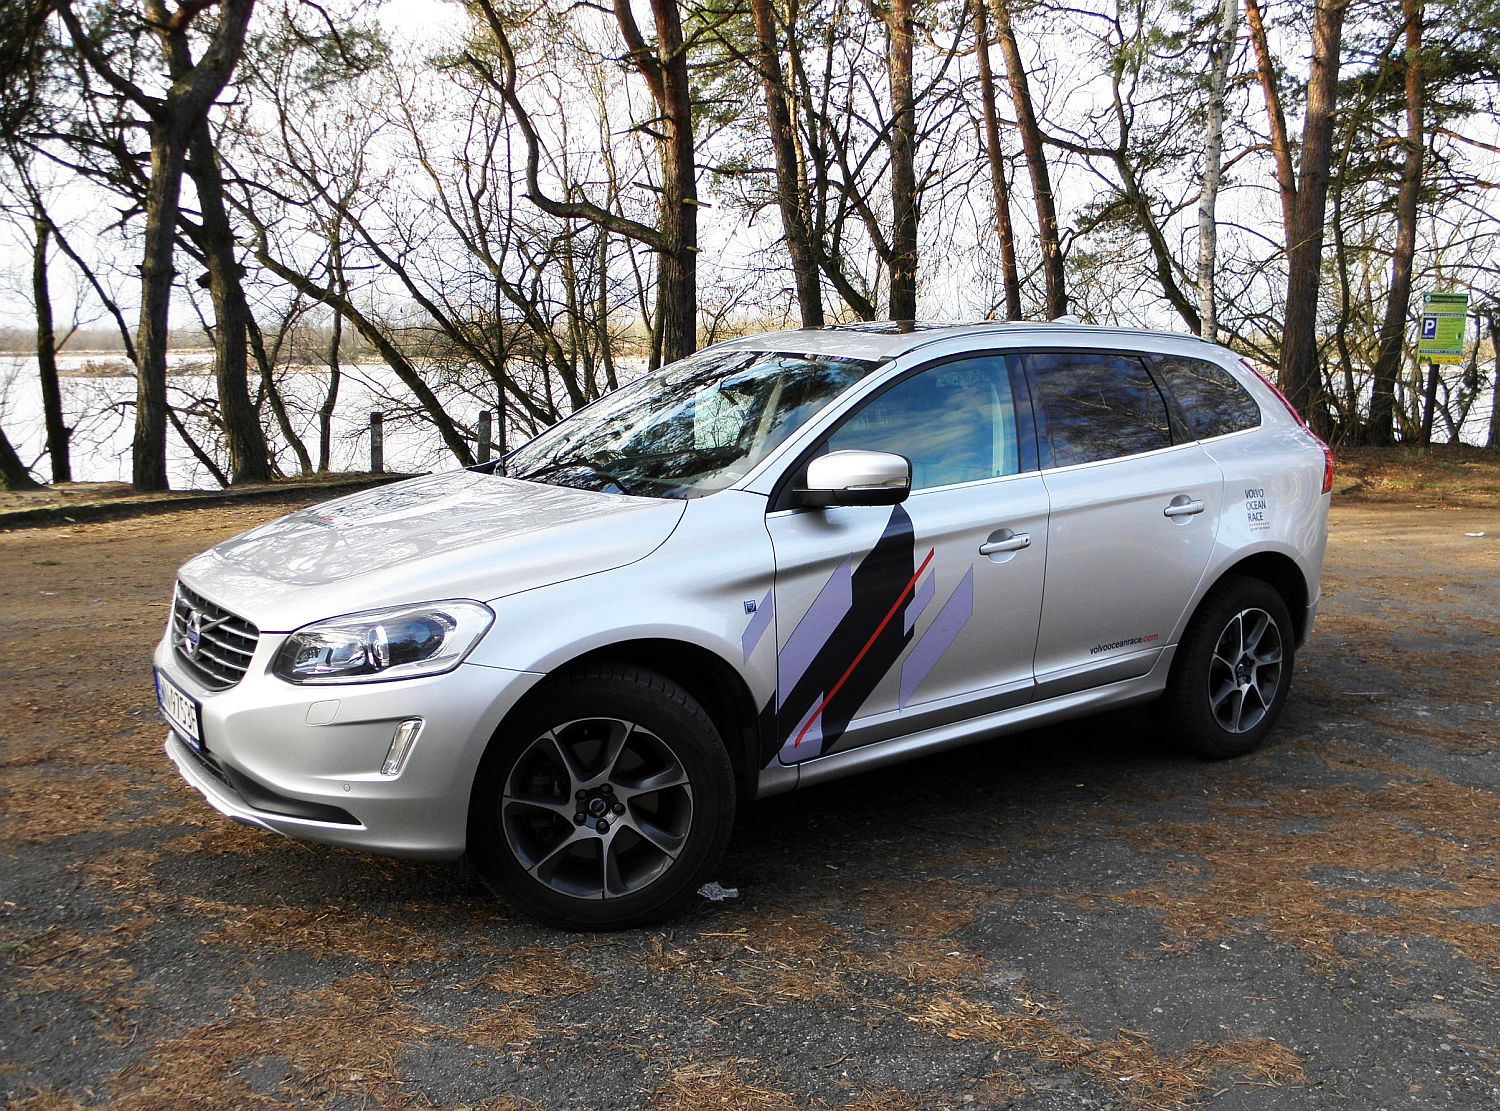 volvo xc60 d5 awd ocean race najlepsza strona volvo. Black Bedroom Furniture Sets. Home Design Ideas